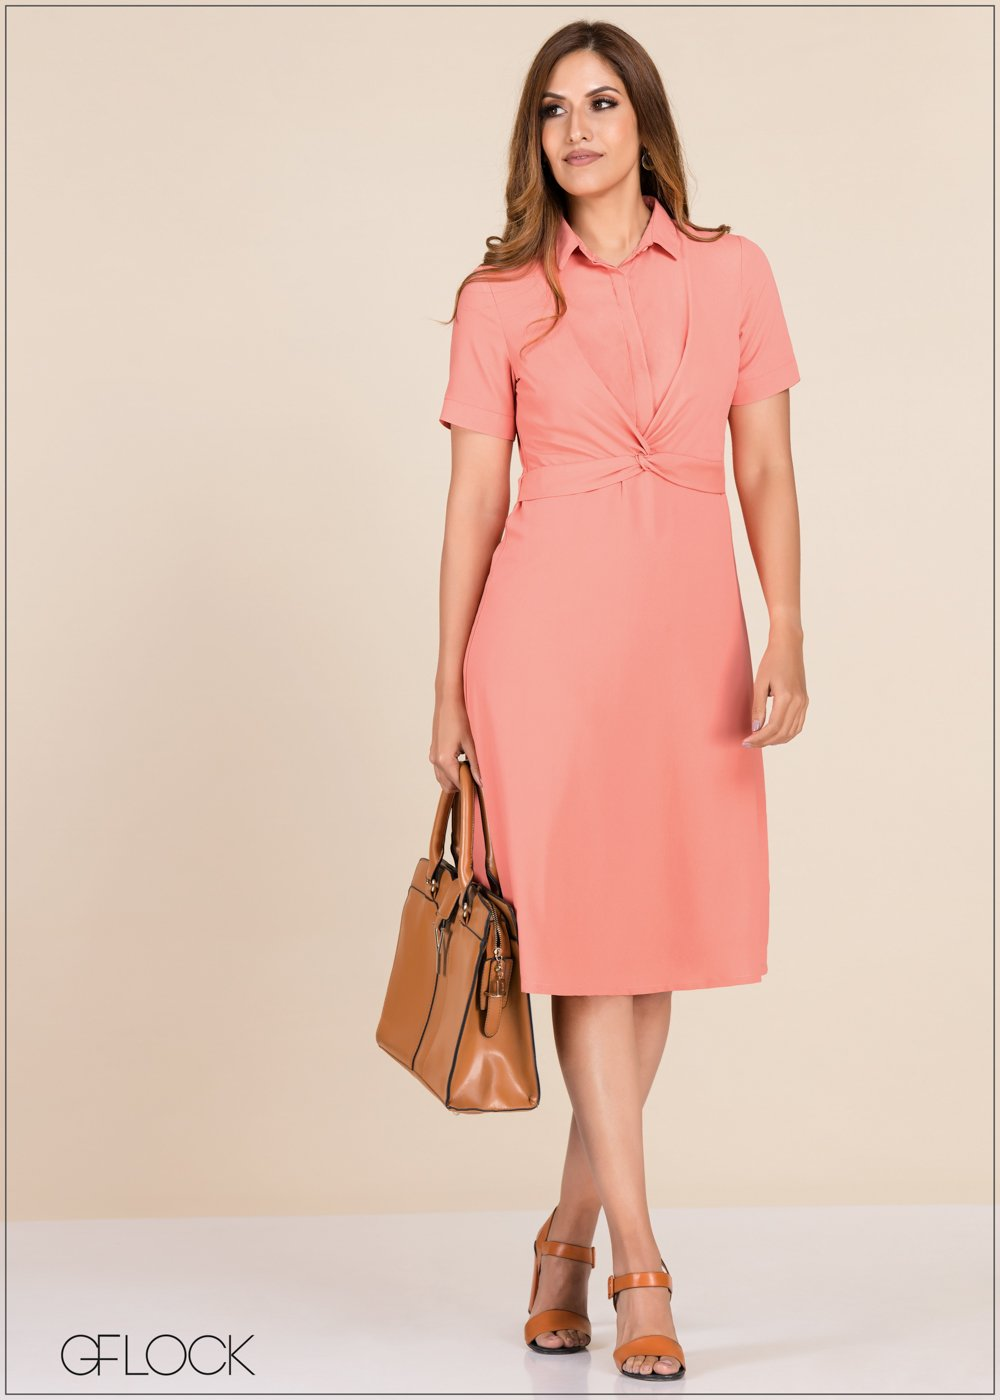 GFLOCK - [product_sku] - Women_Dresses - Waist Gathered Workwear Dress